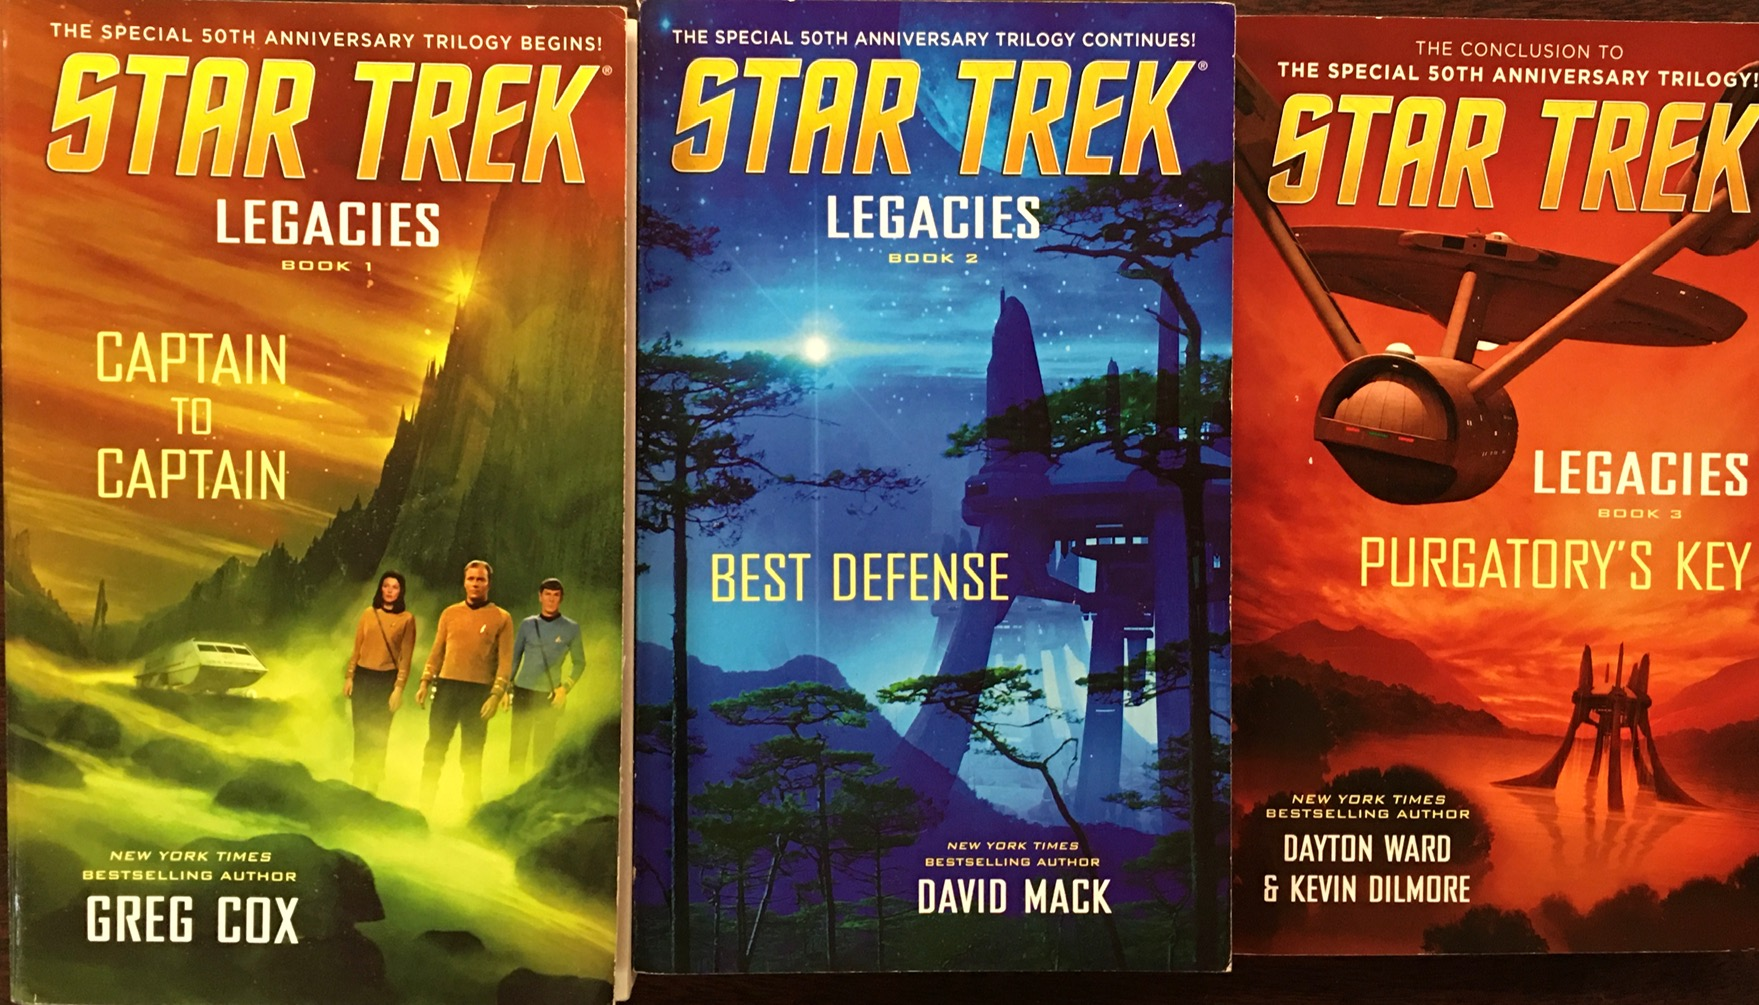 Image for Star Trek: Legacies - 3 Volume Set [Captain to Captain/ Best Defense/ Purgatory's Key]